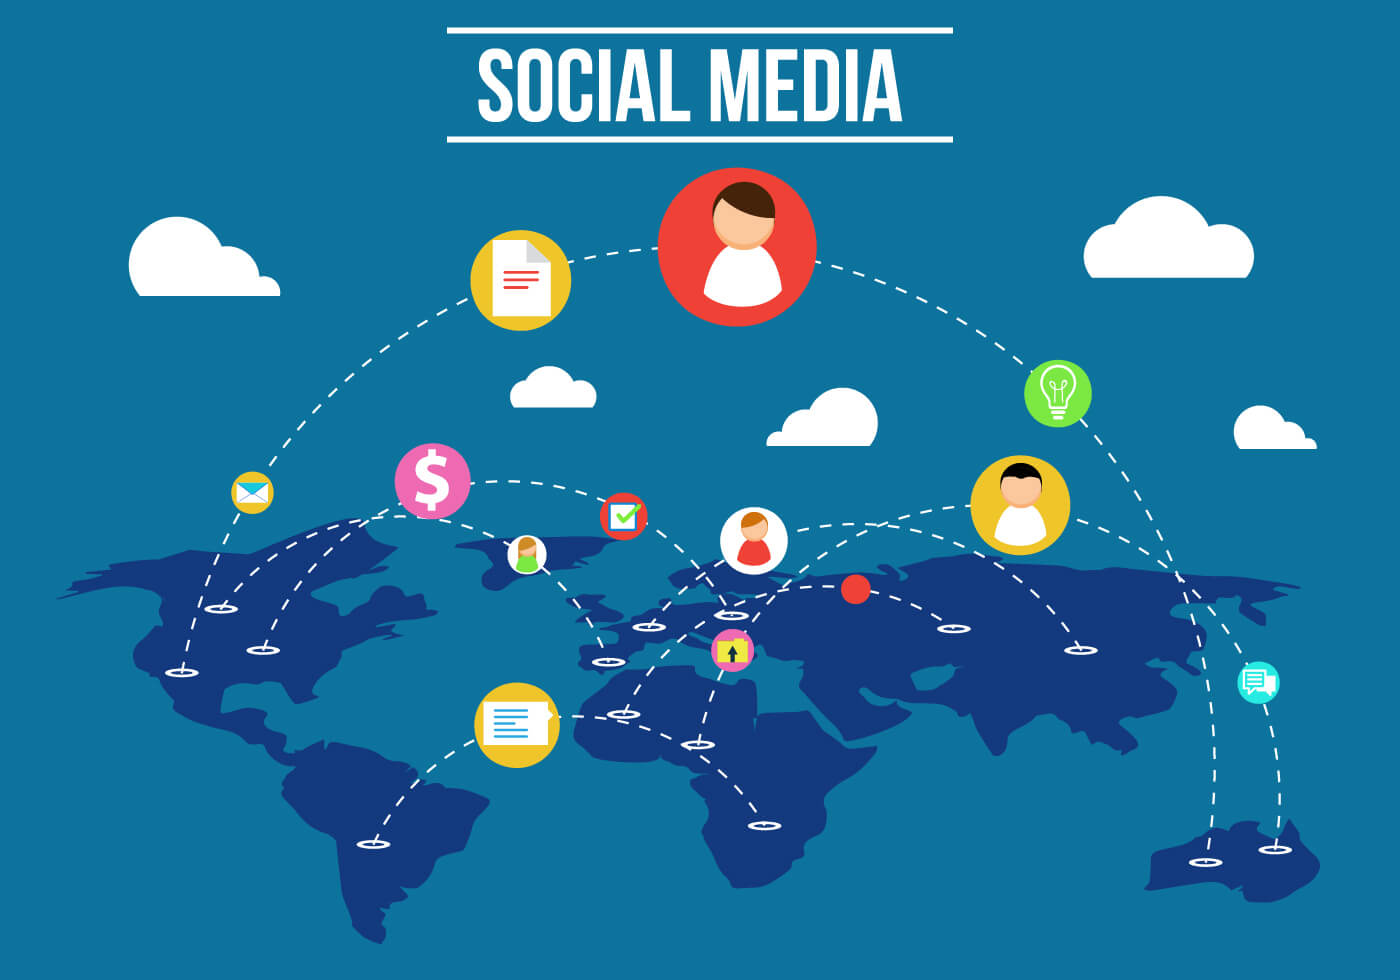 5 Reasons Social Media Is Great For Marketing